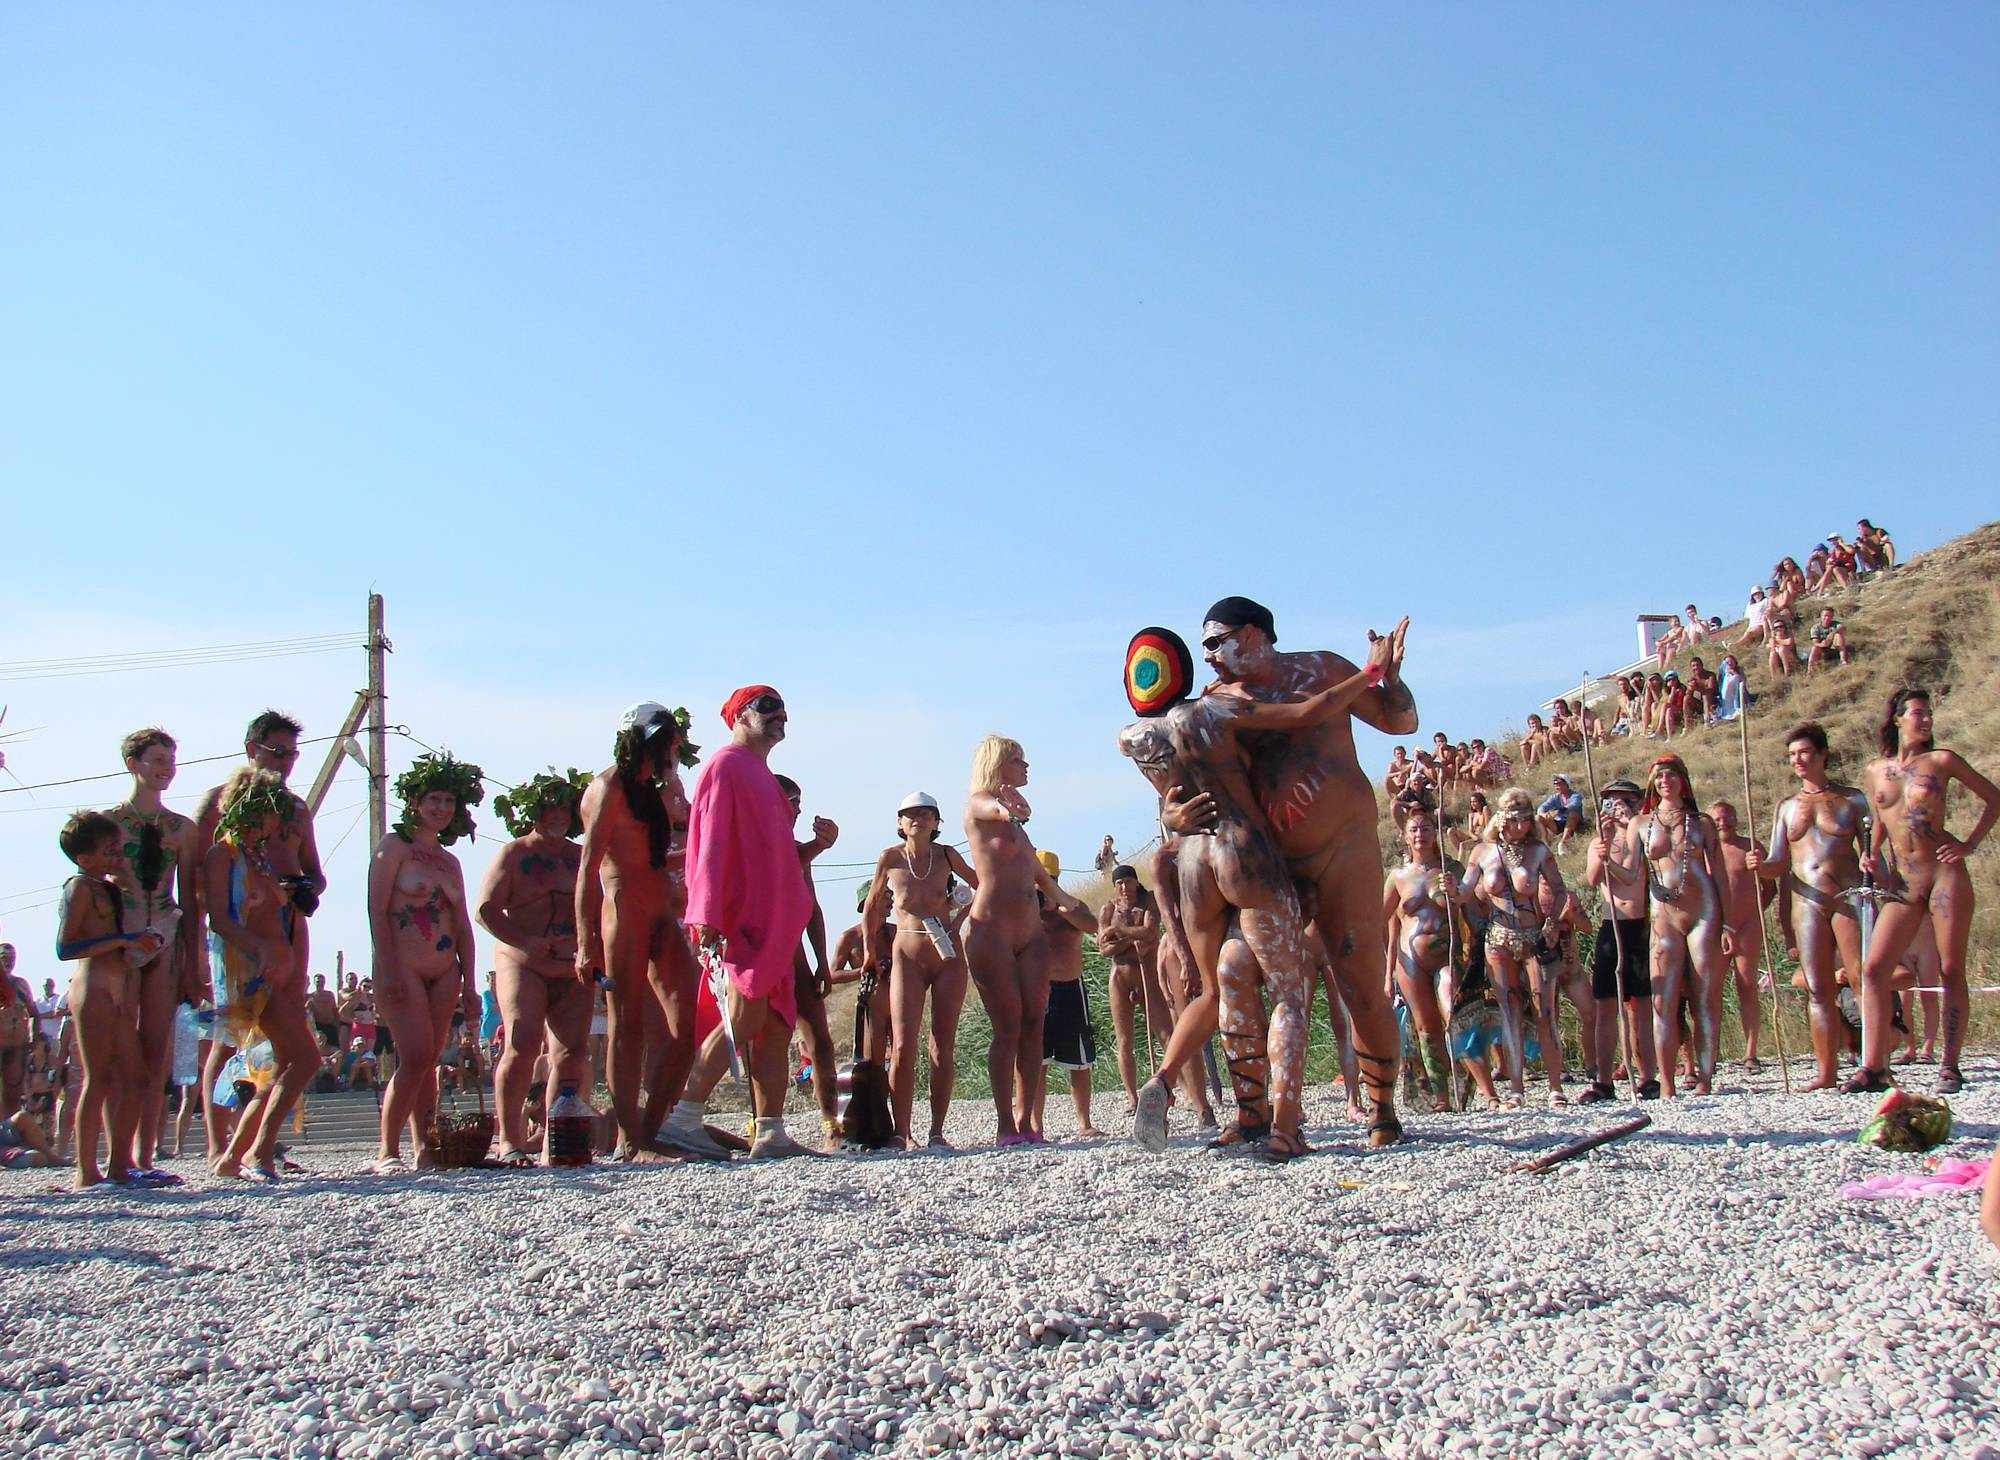 Nudist Pics Neptune Day Dance Views - 2